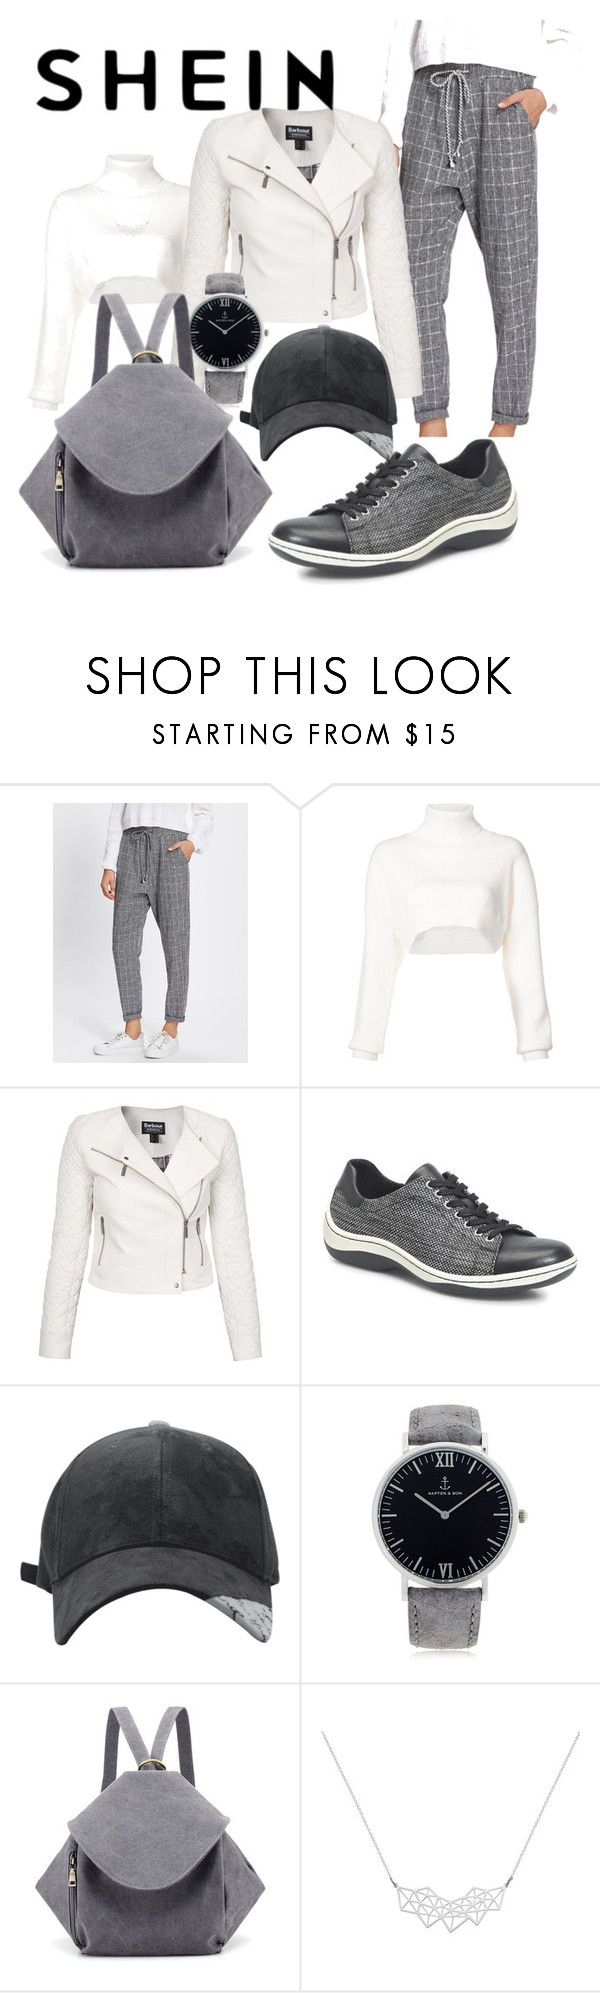 """""""Comfort and Style"""" by fishermansdaughter ❤ liked on Polyvore featuring Alexandre Vauthier, Barbour International, Børn, Kapten & Son and A Weathered Penny"""